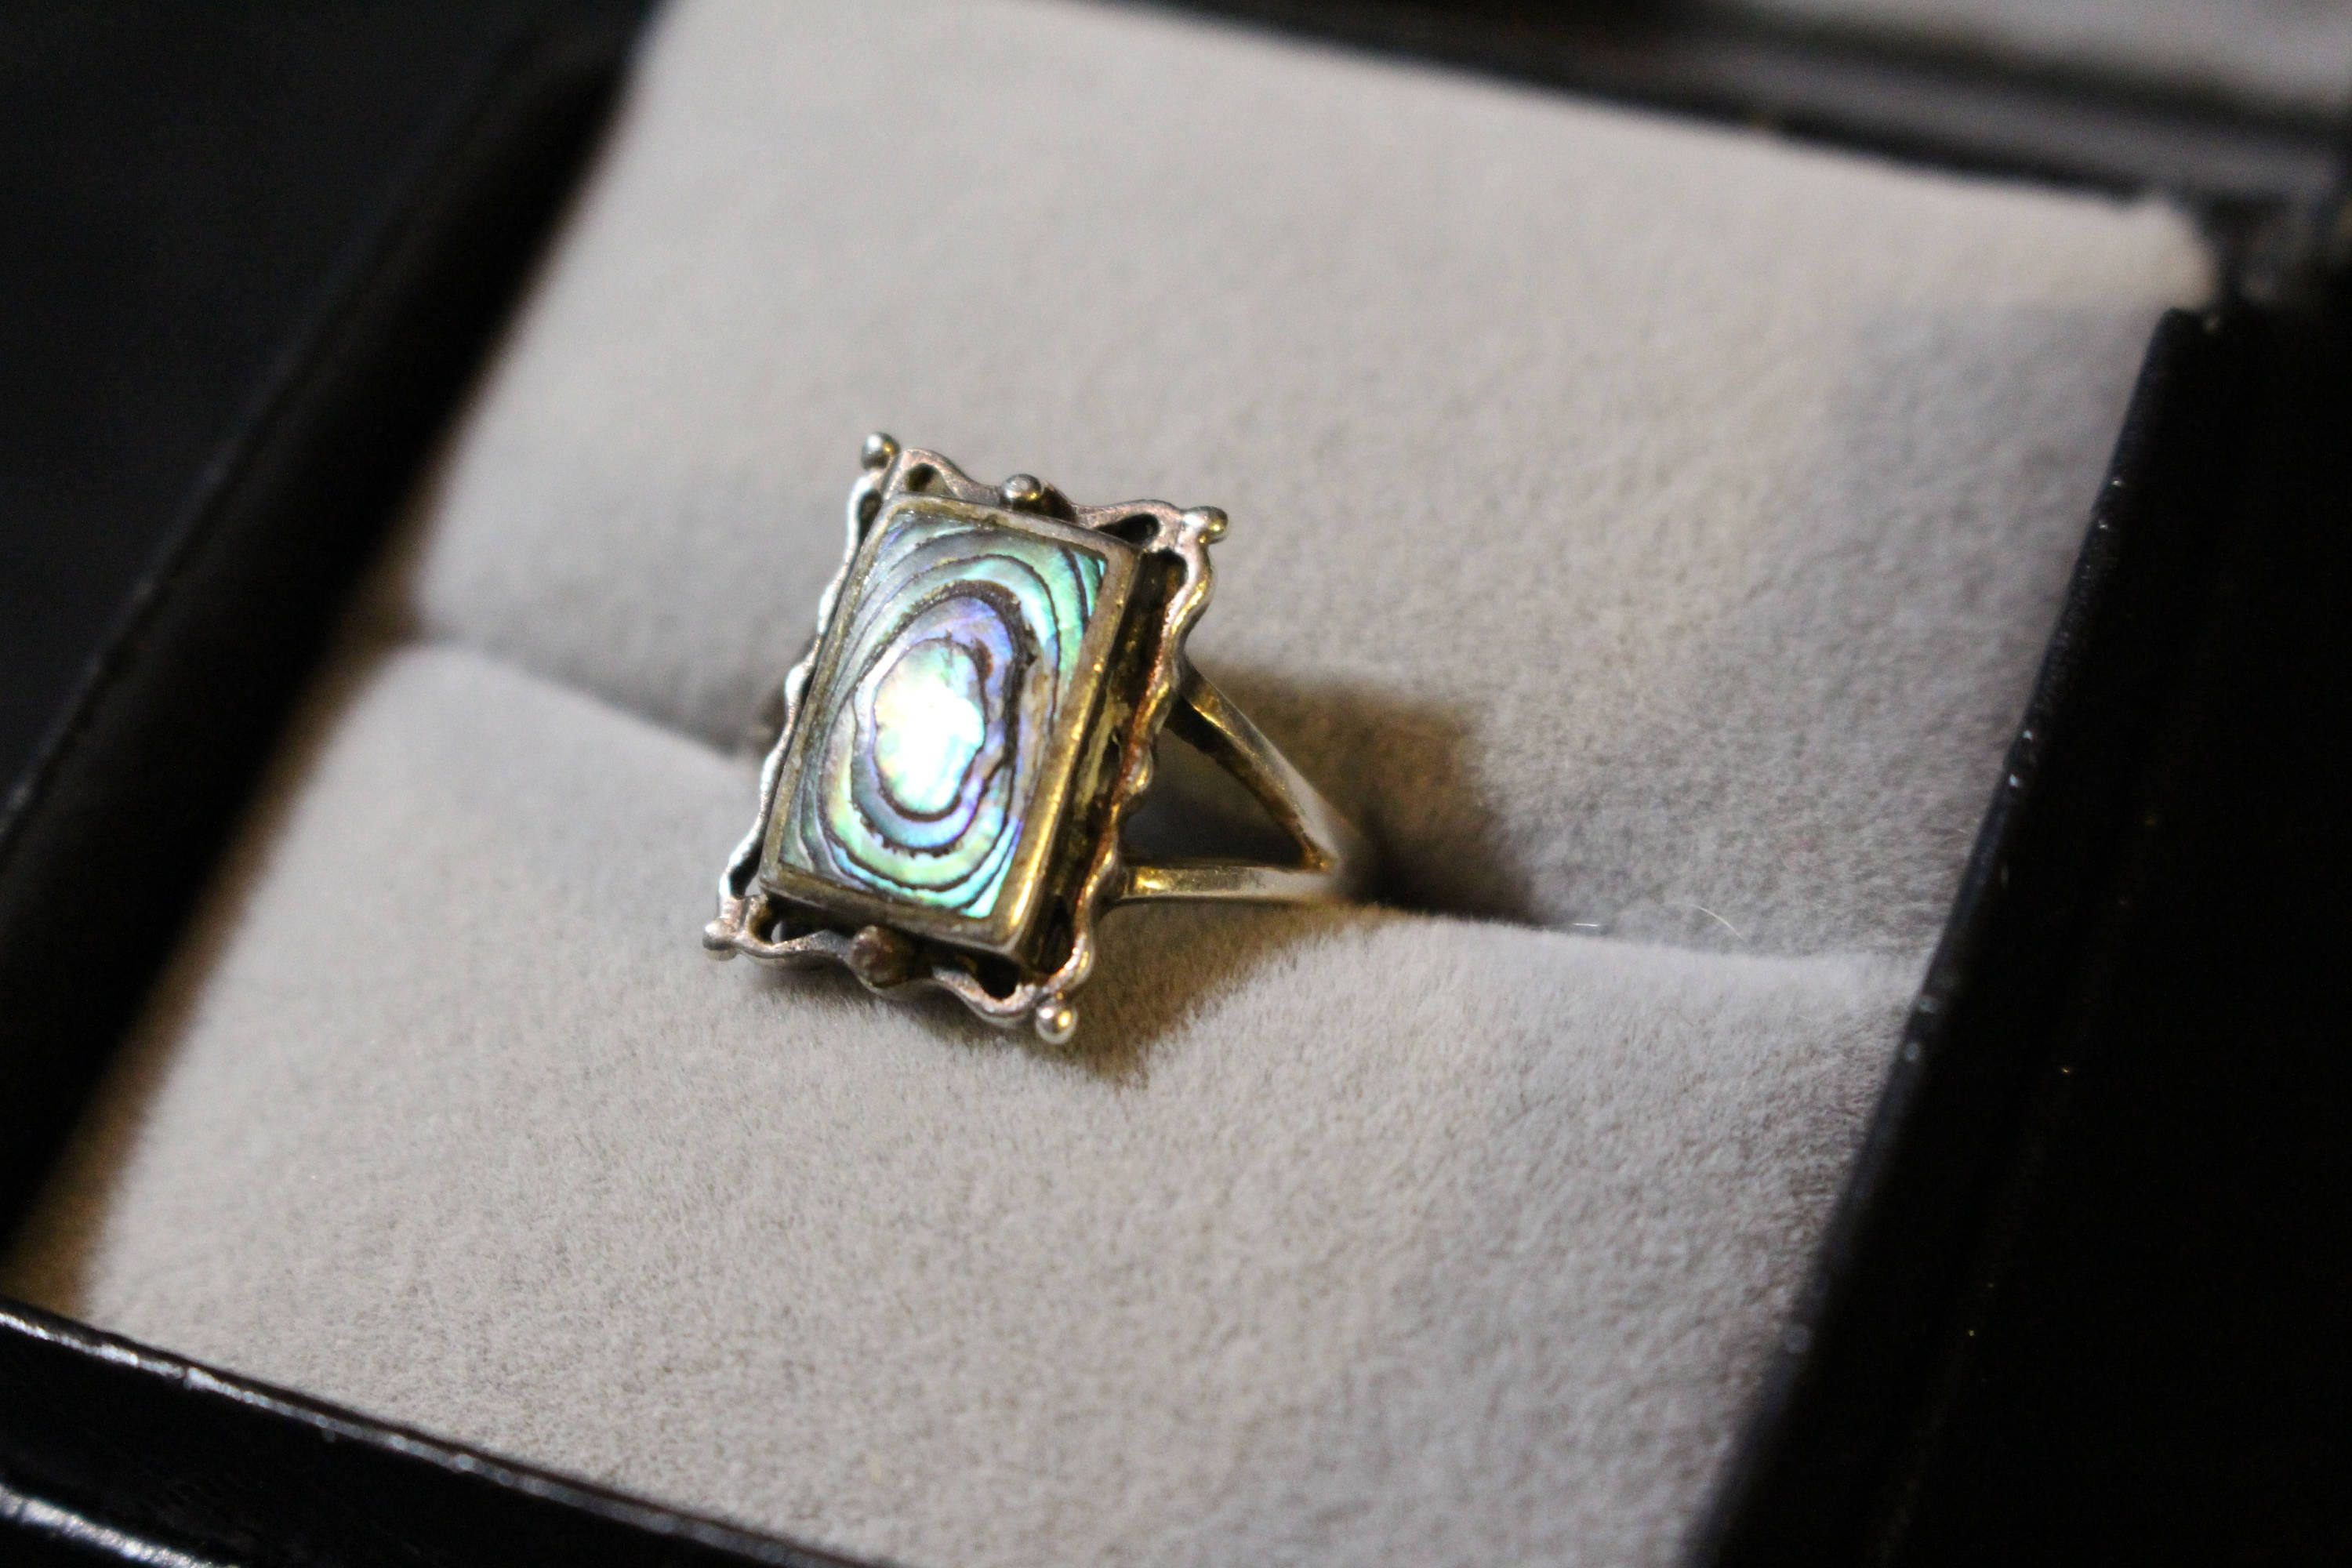 oval ring swirl overstock abalone on com thailand free shipping product handmade over sterling orders watches rings silver wedding vintage jewelry